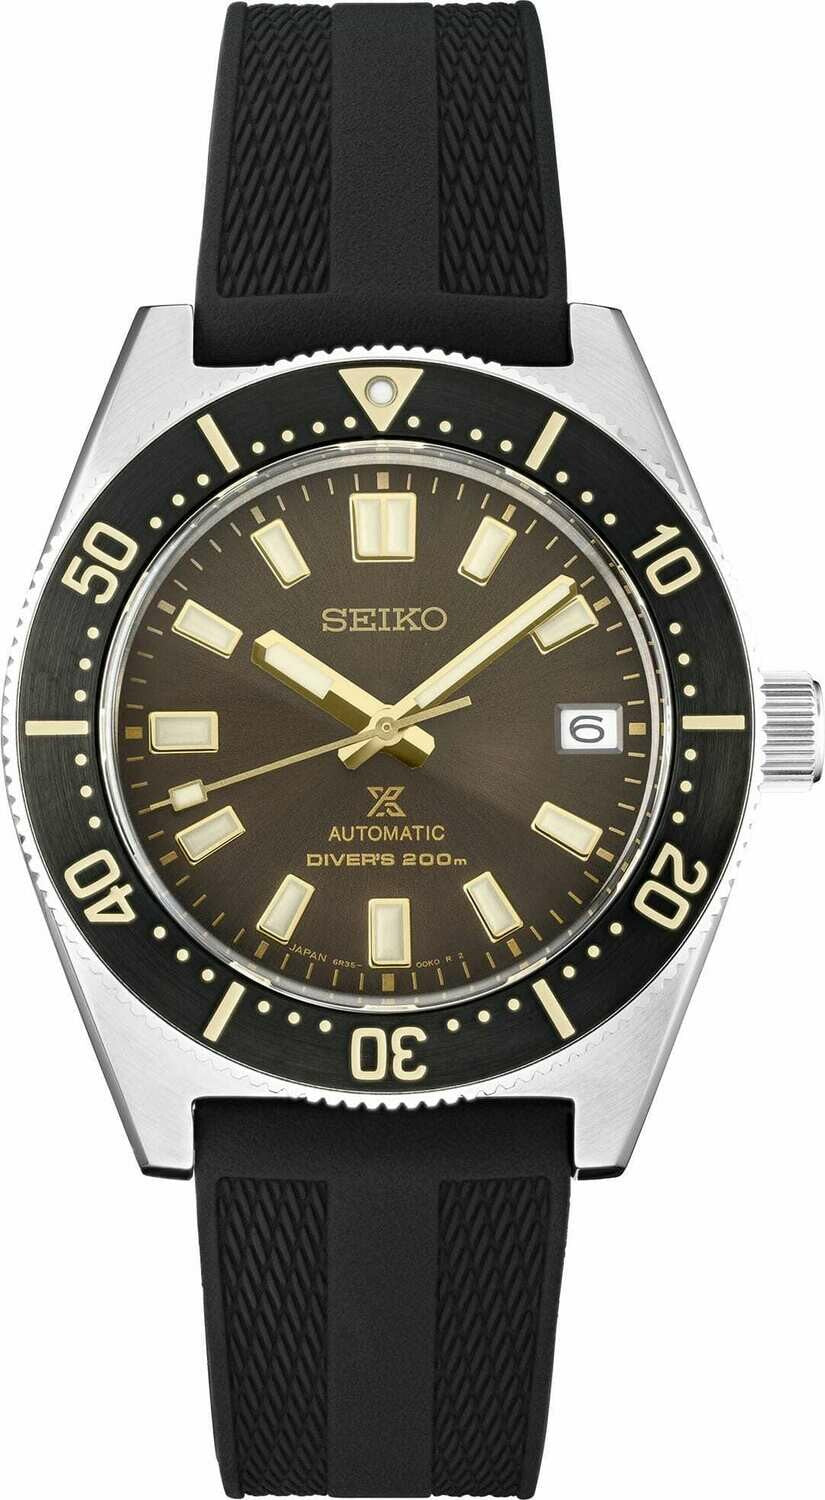 Seiko Prospex SPB147 1965 Modern Dive Watch